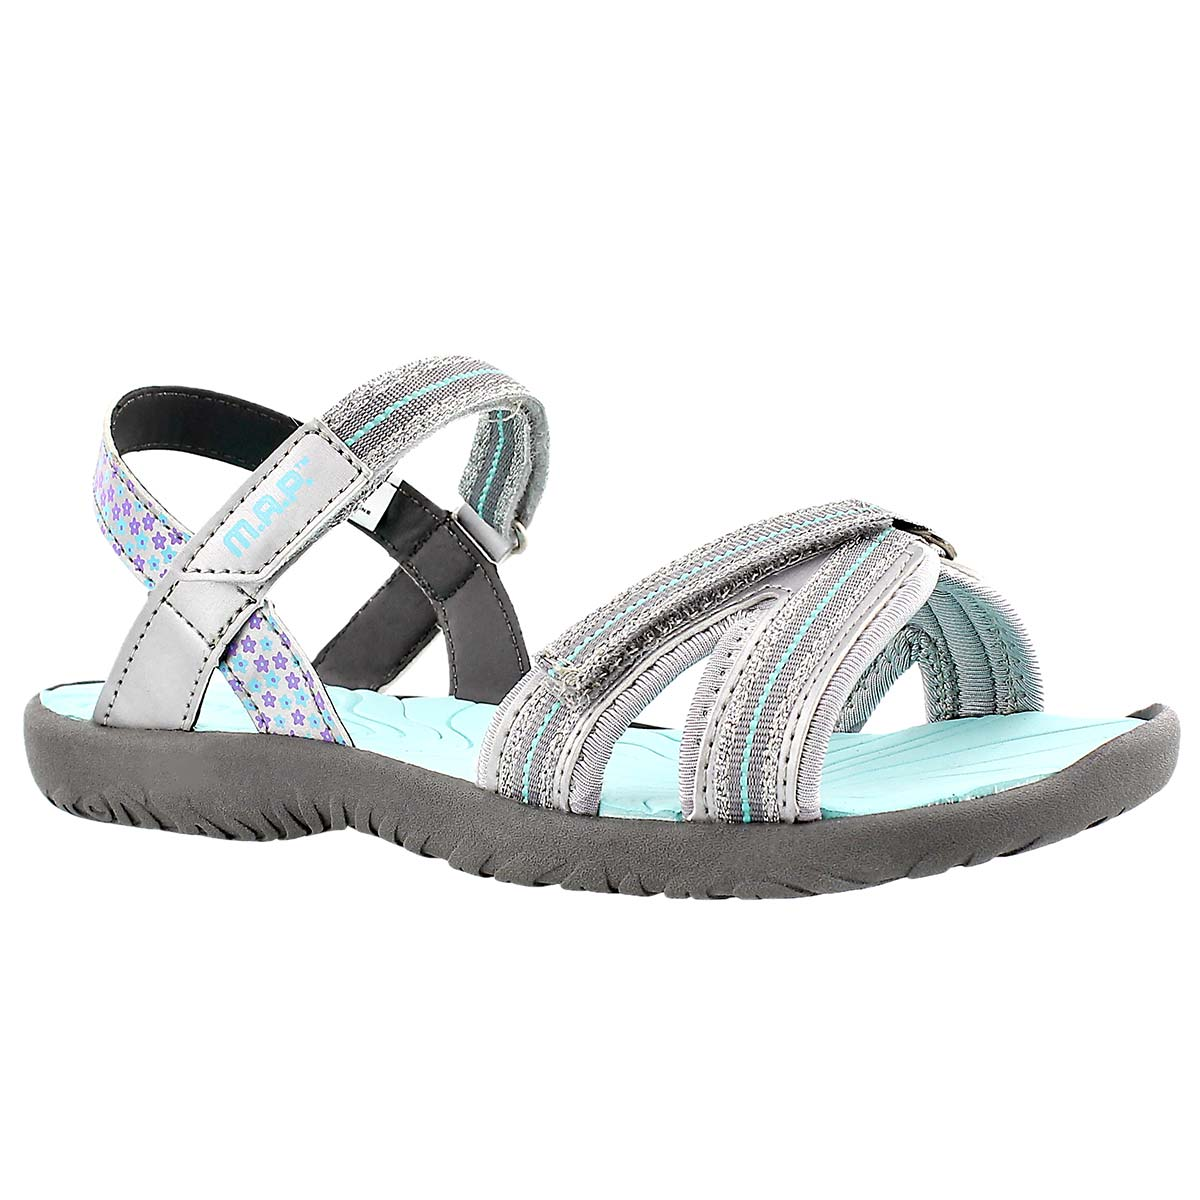 Girls' CARMI silver/turq casual sandals